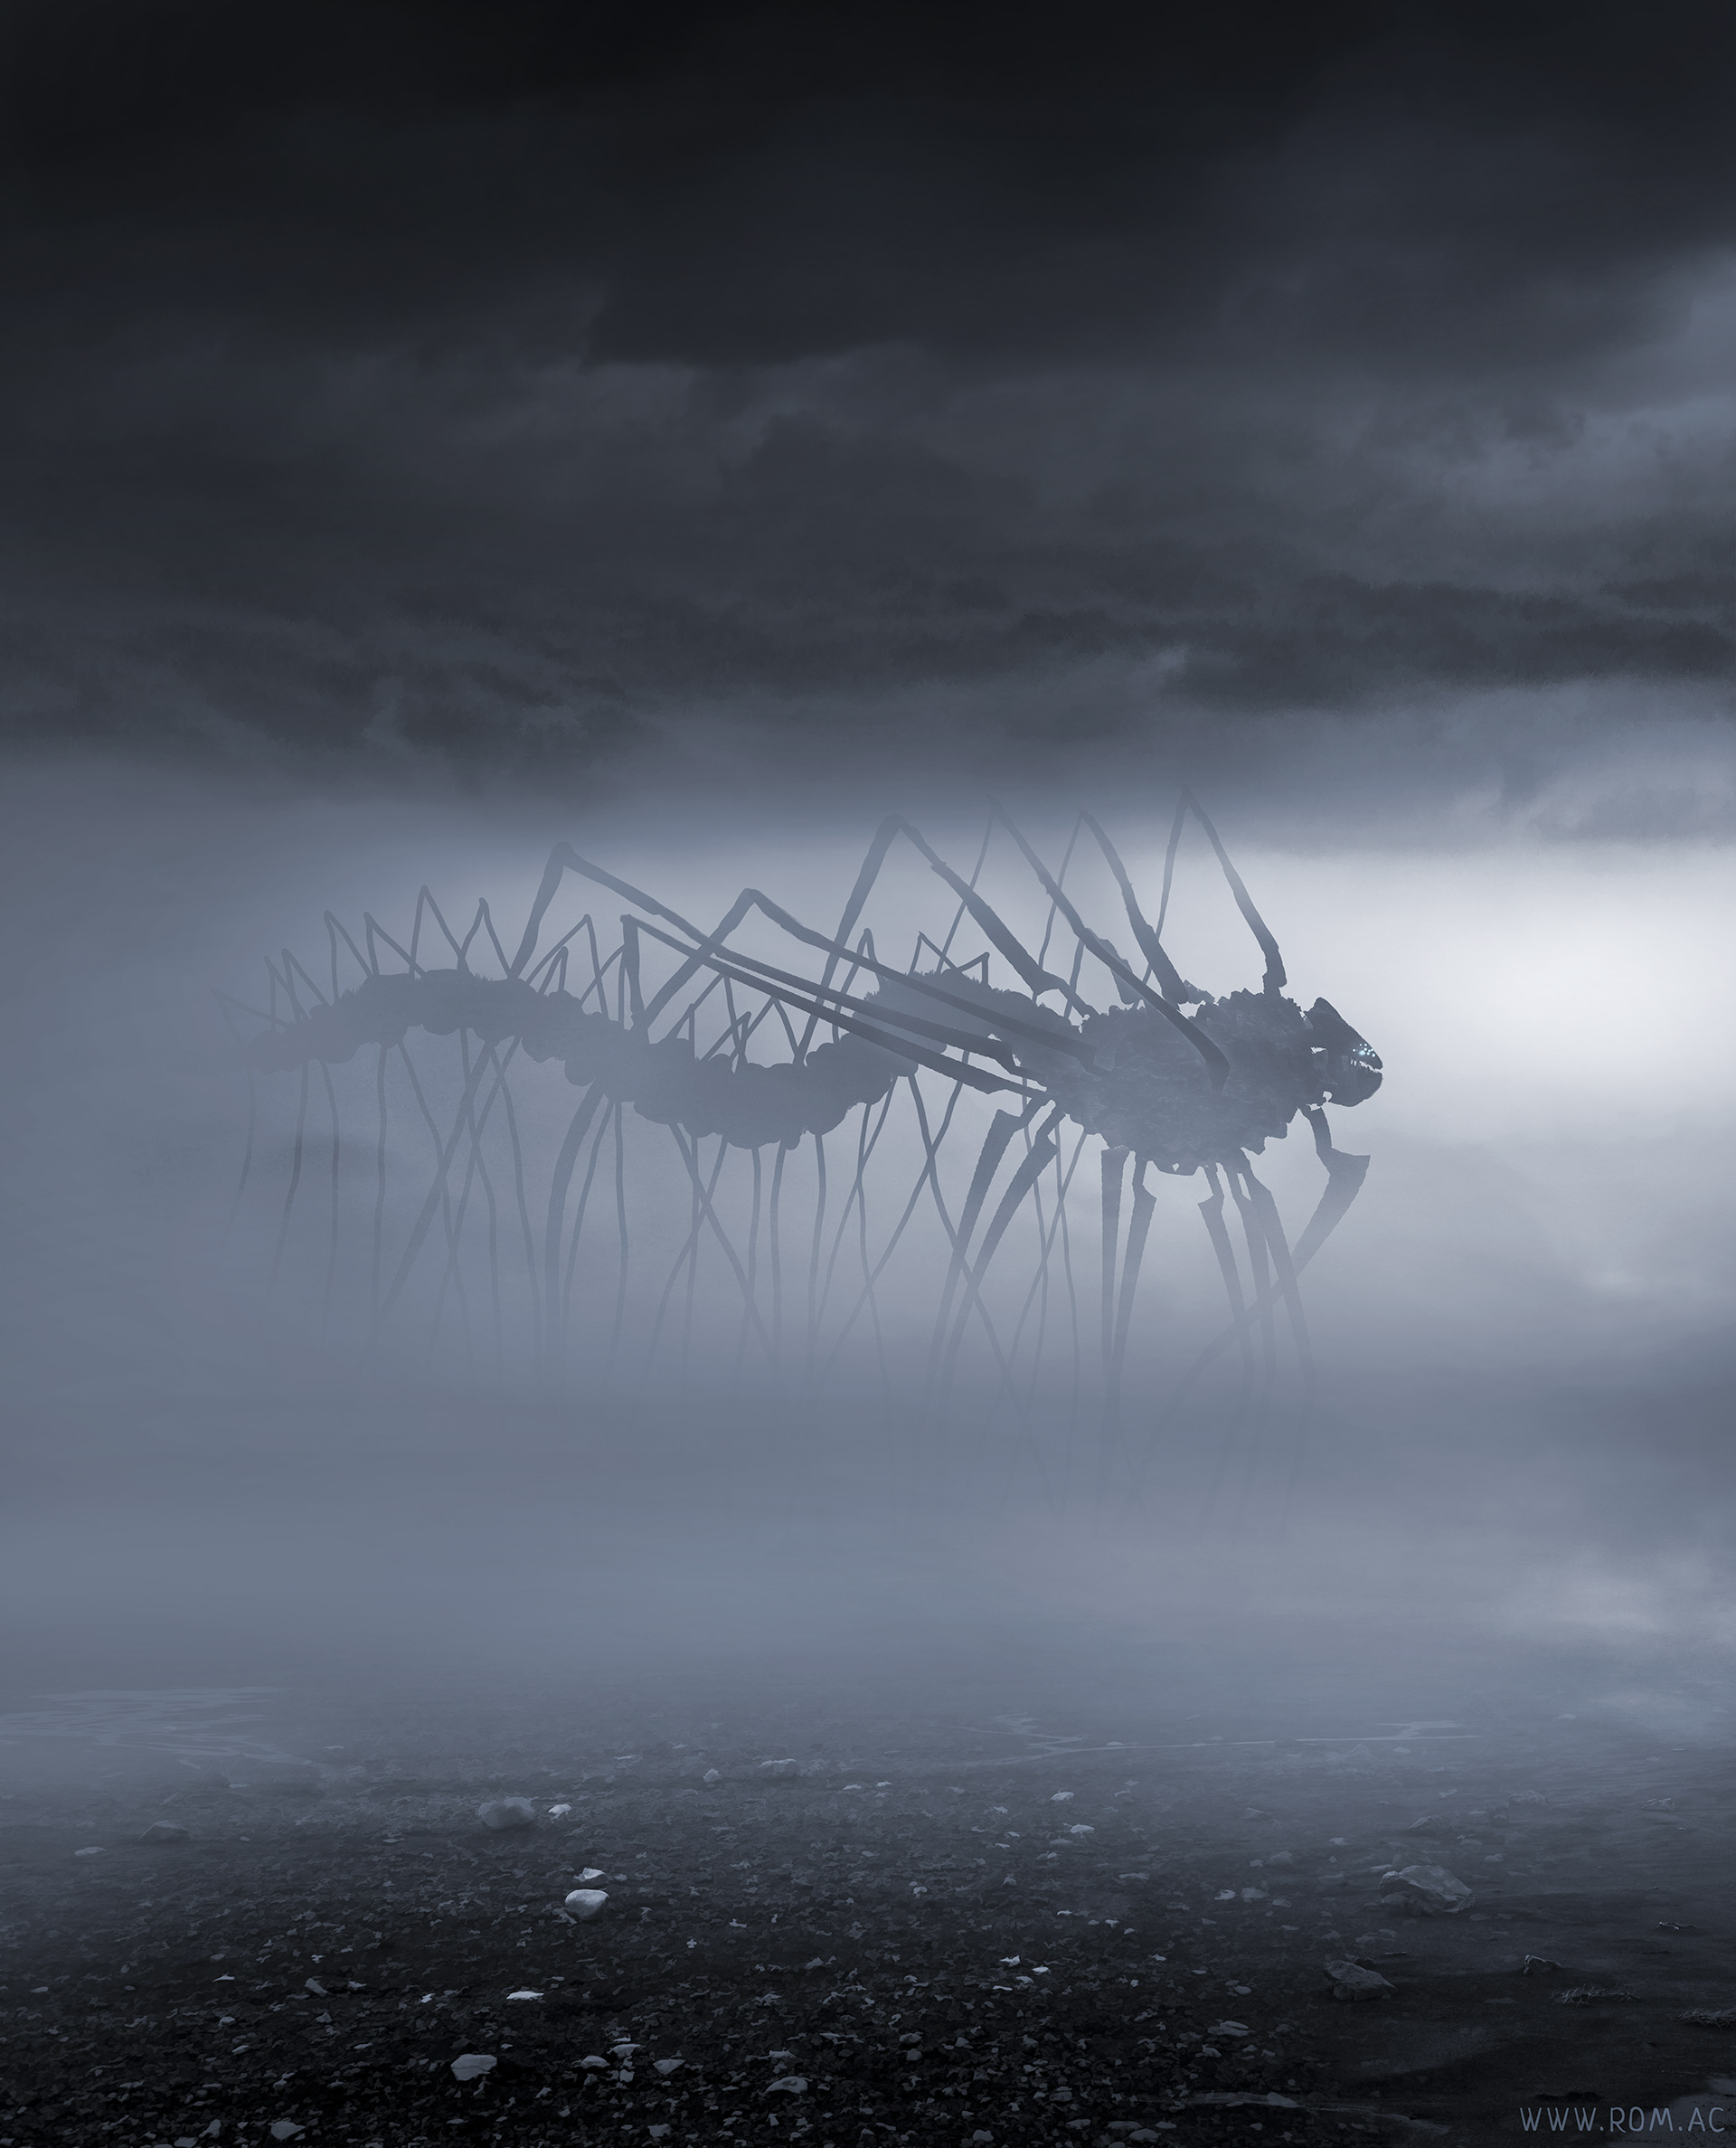 Something creeping in the fog by alexiuss